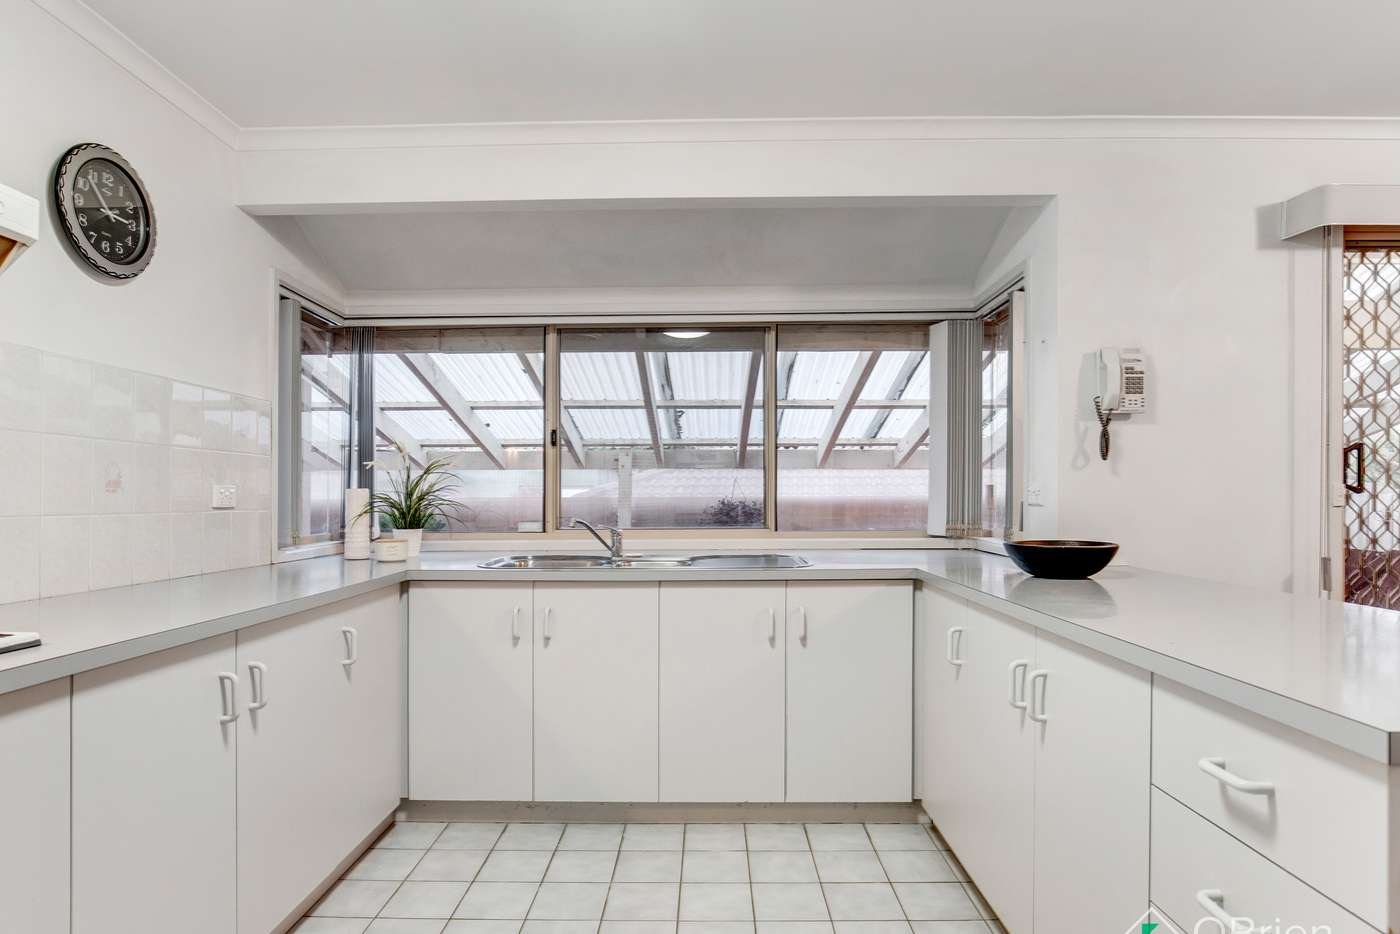 Fifth view of Homely house listing, 3 Tambo Court, Langwarrin VIC 3910